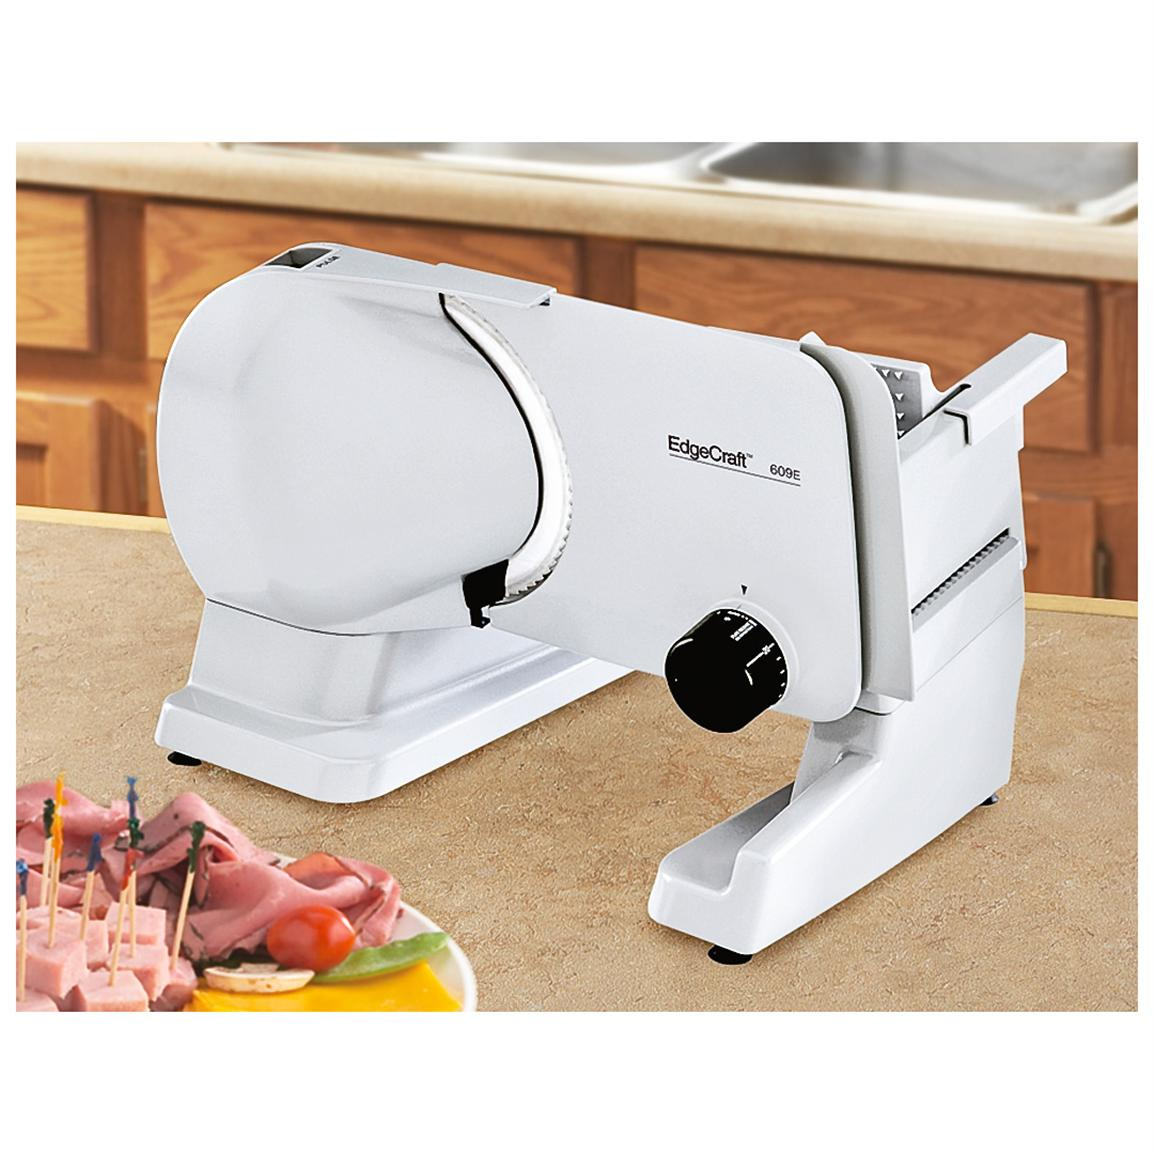 Edgecraft® by Chef's Choice® Electric Food Slicer